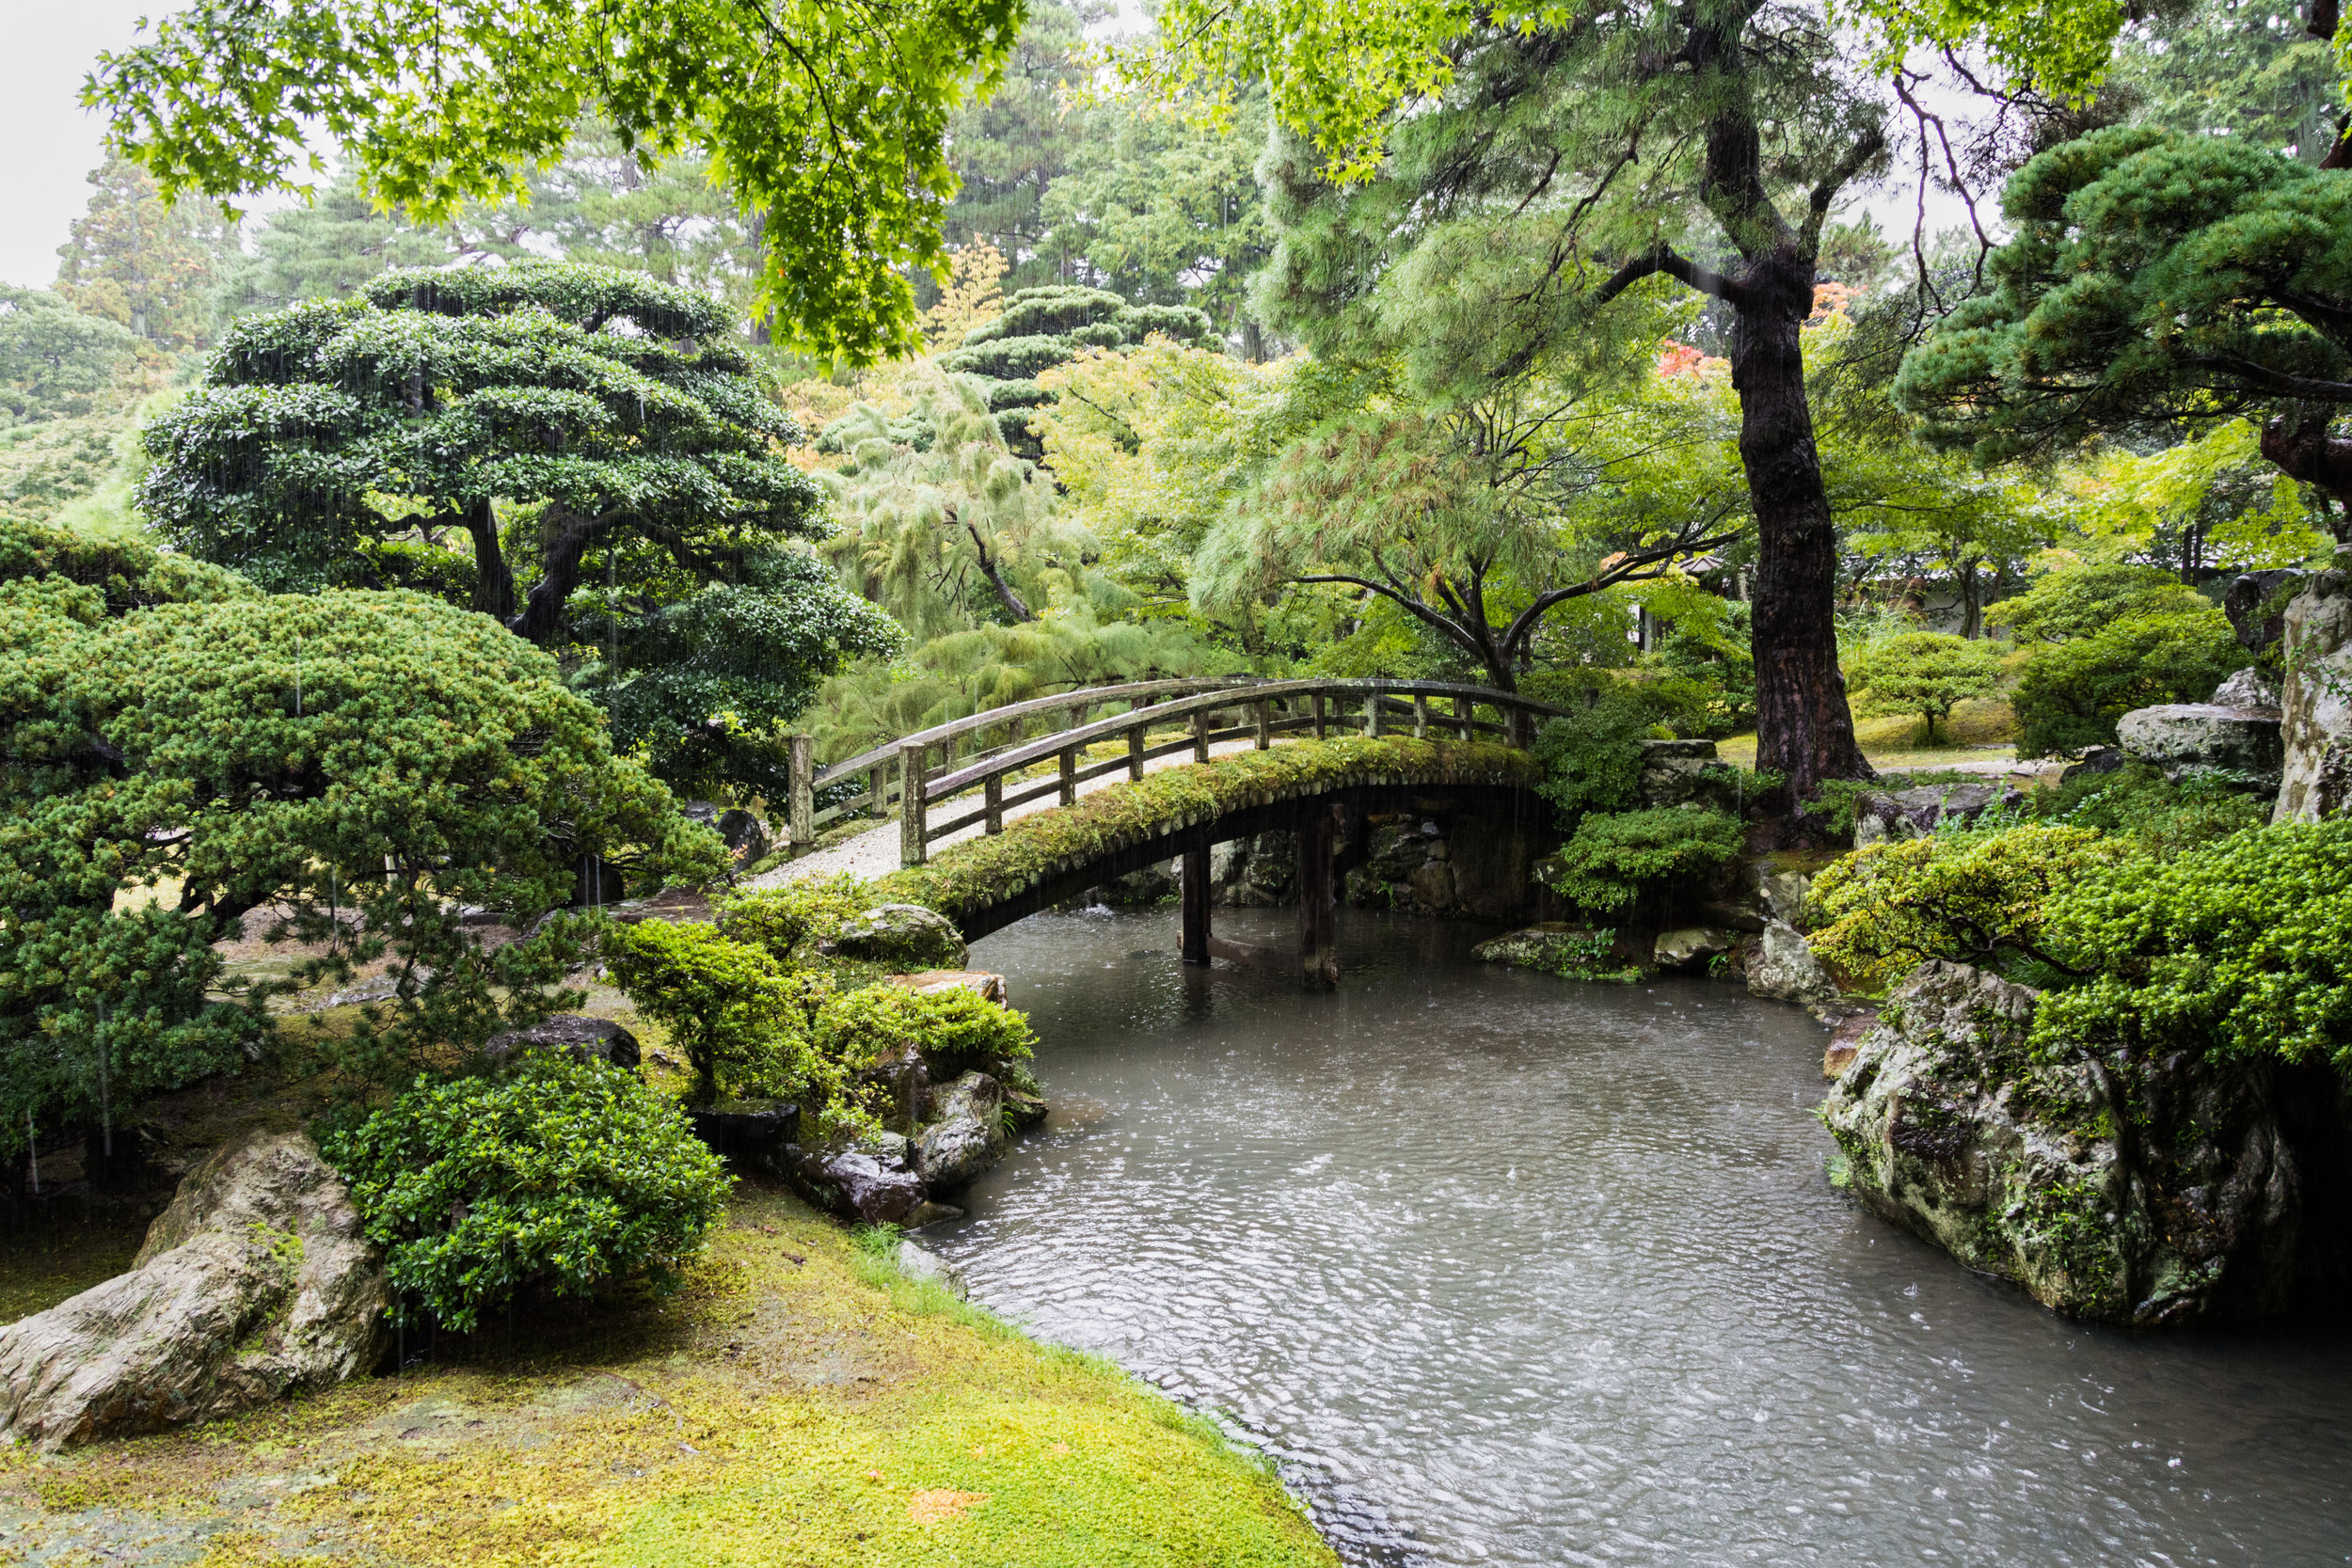 Kyoto was beautiful, even in the rain (and it rained a lot).